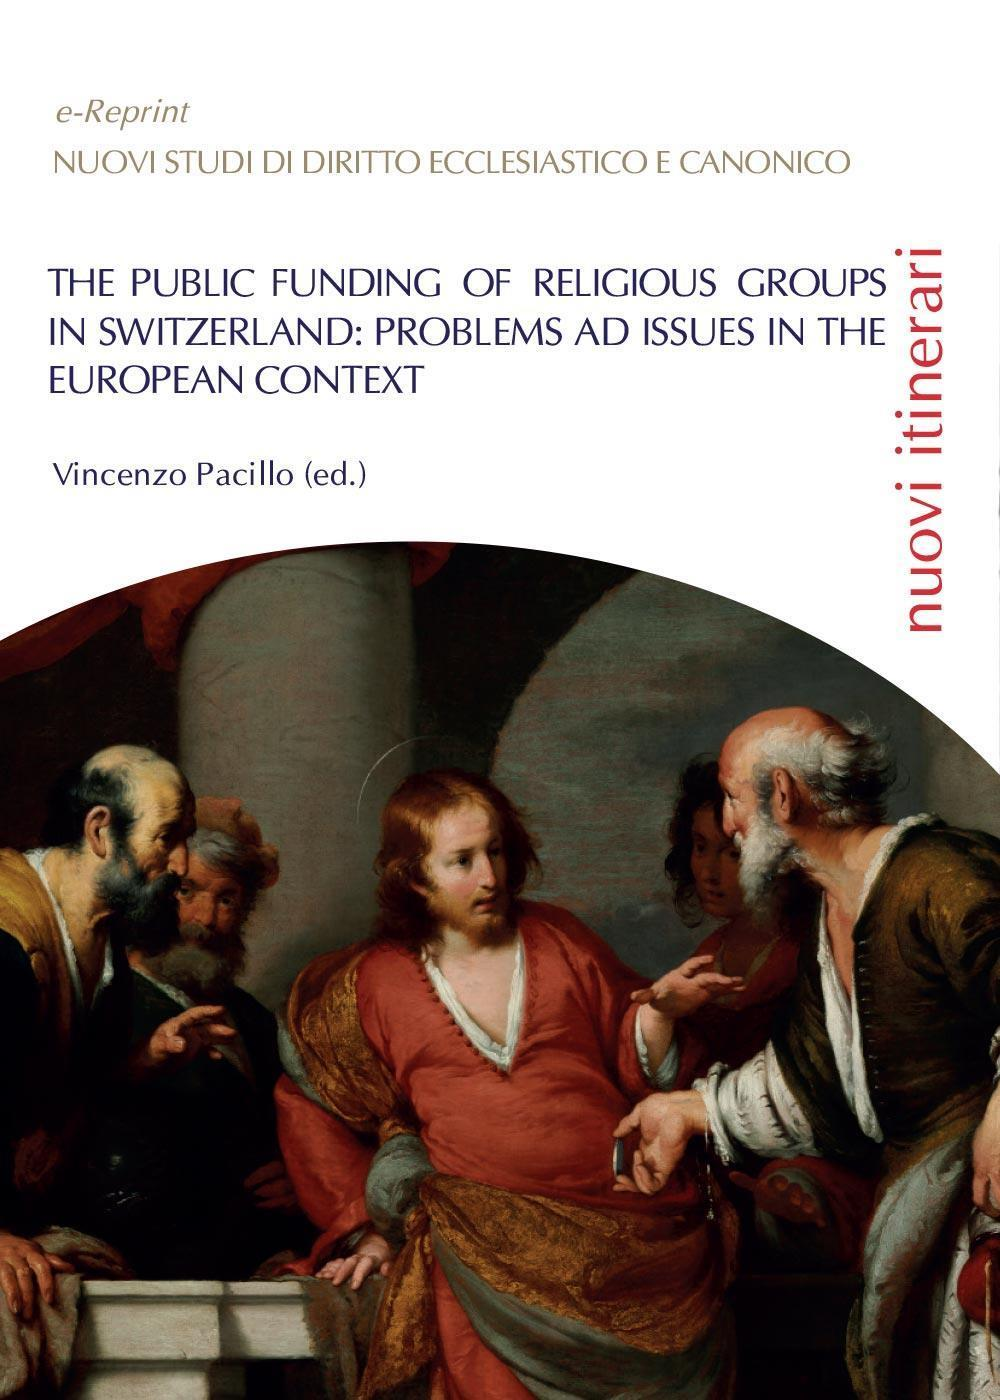 The Public Funding of Religious Groups in Switzerland: Problems ad Issues in the European Context